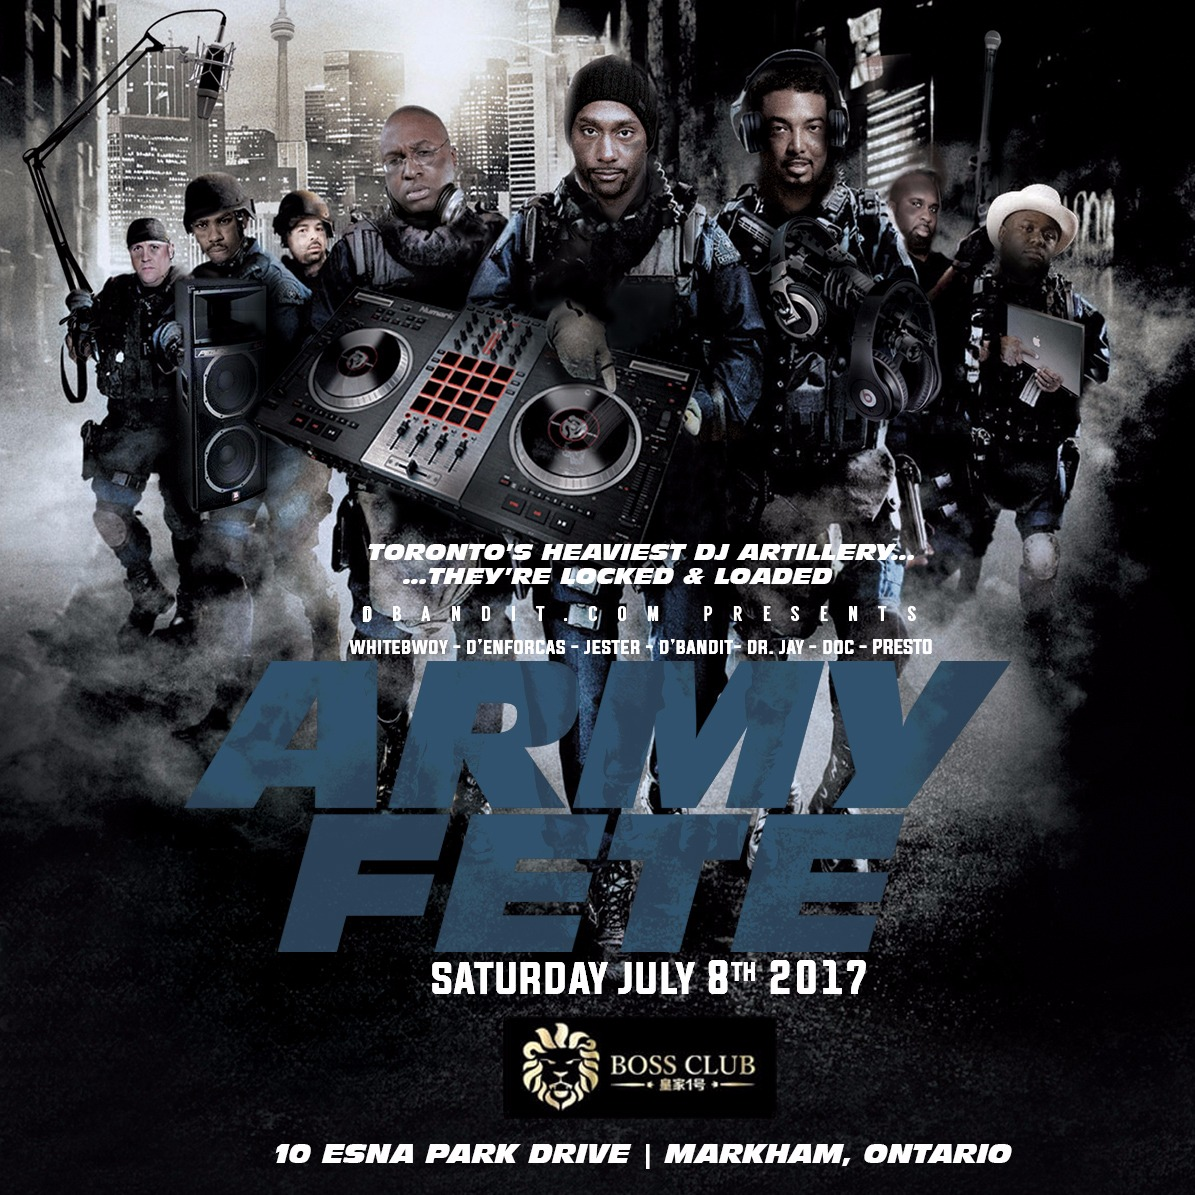 Army Fete 2017 @ Boss Club